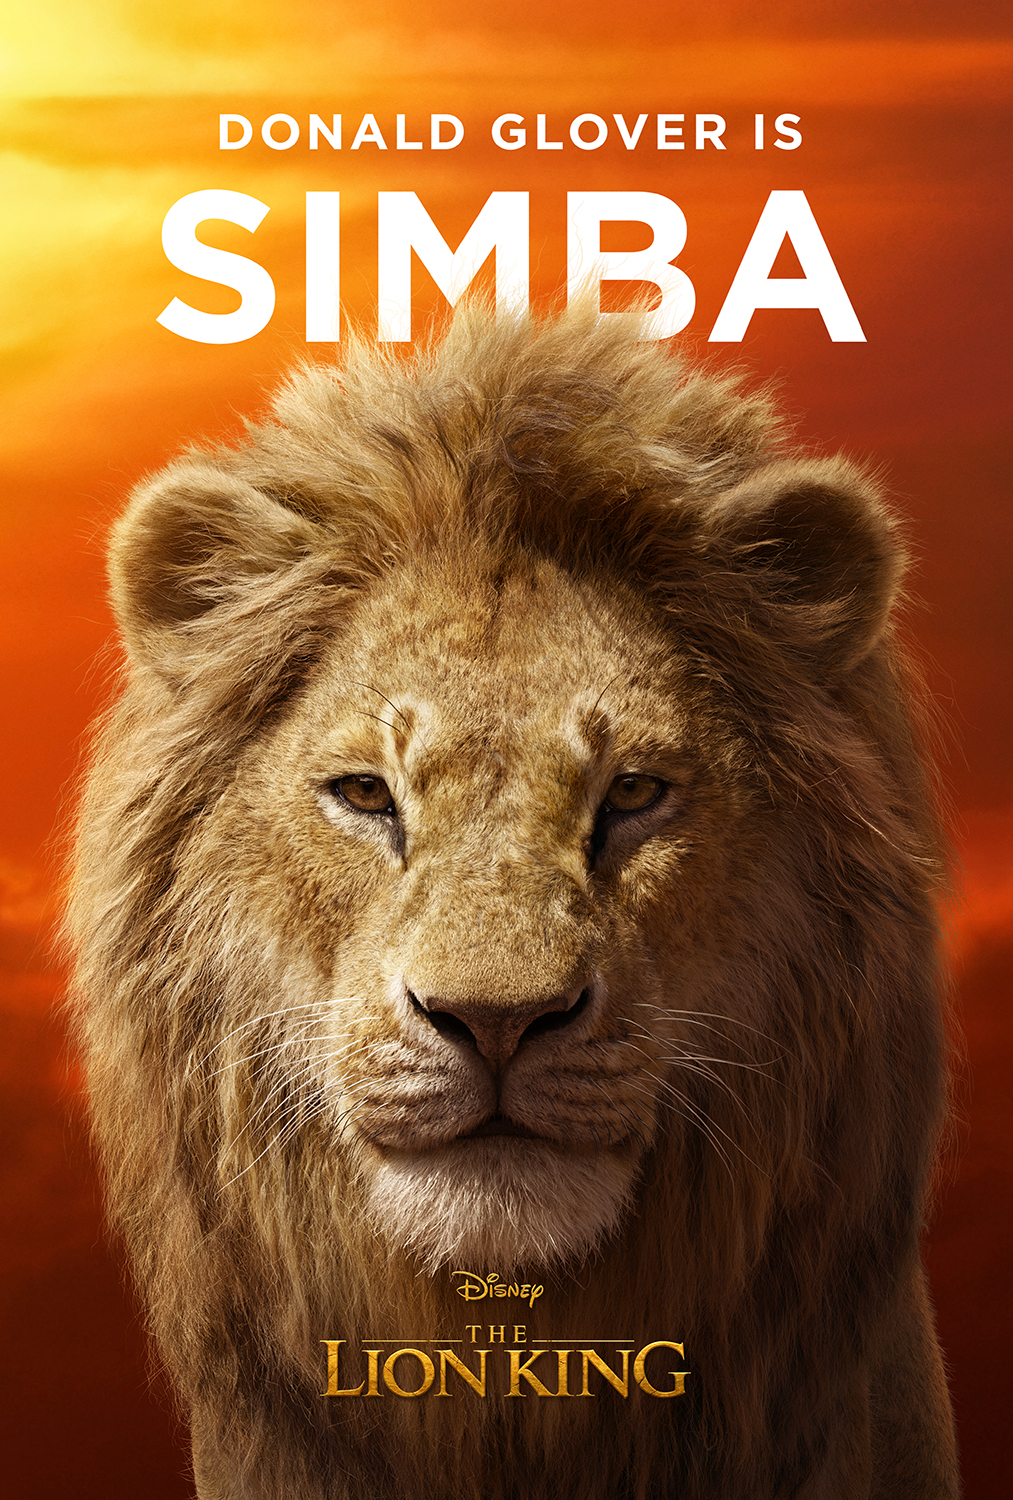 THE LION KING | DOMESTIC BUS SHELTER FINISHING & ILLUSTRATION